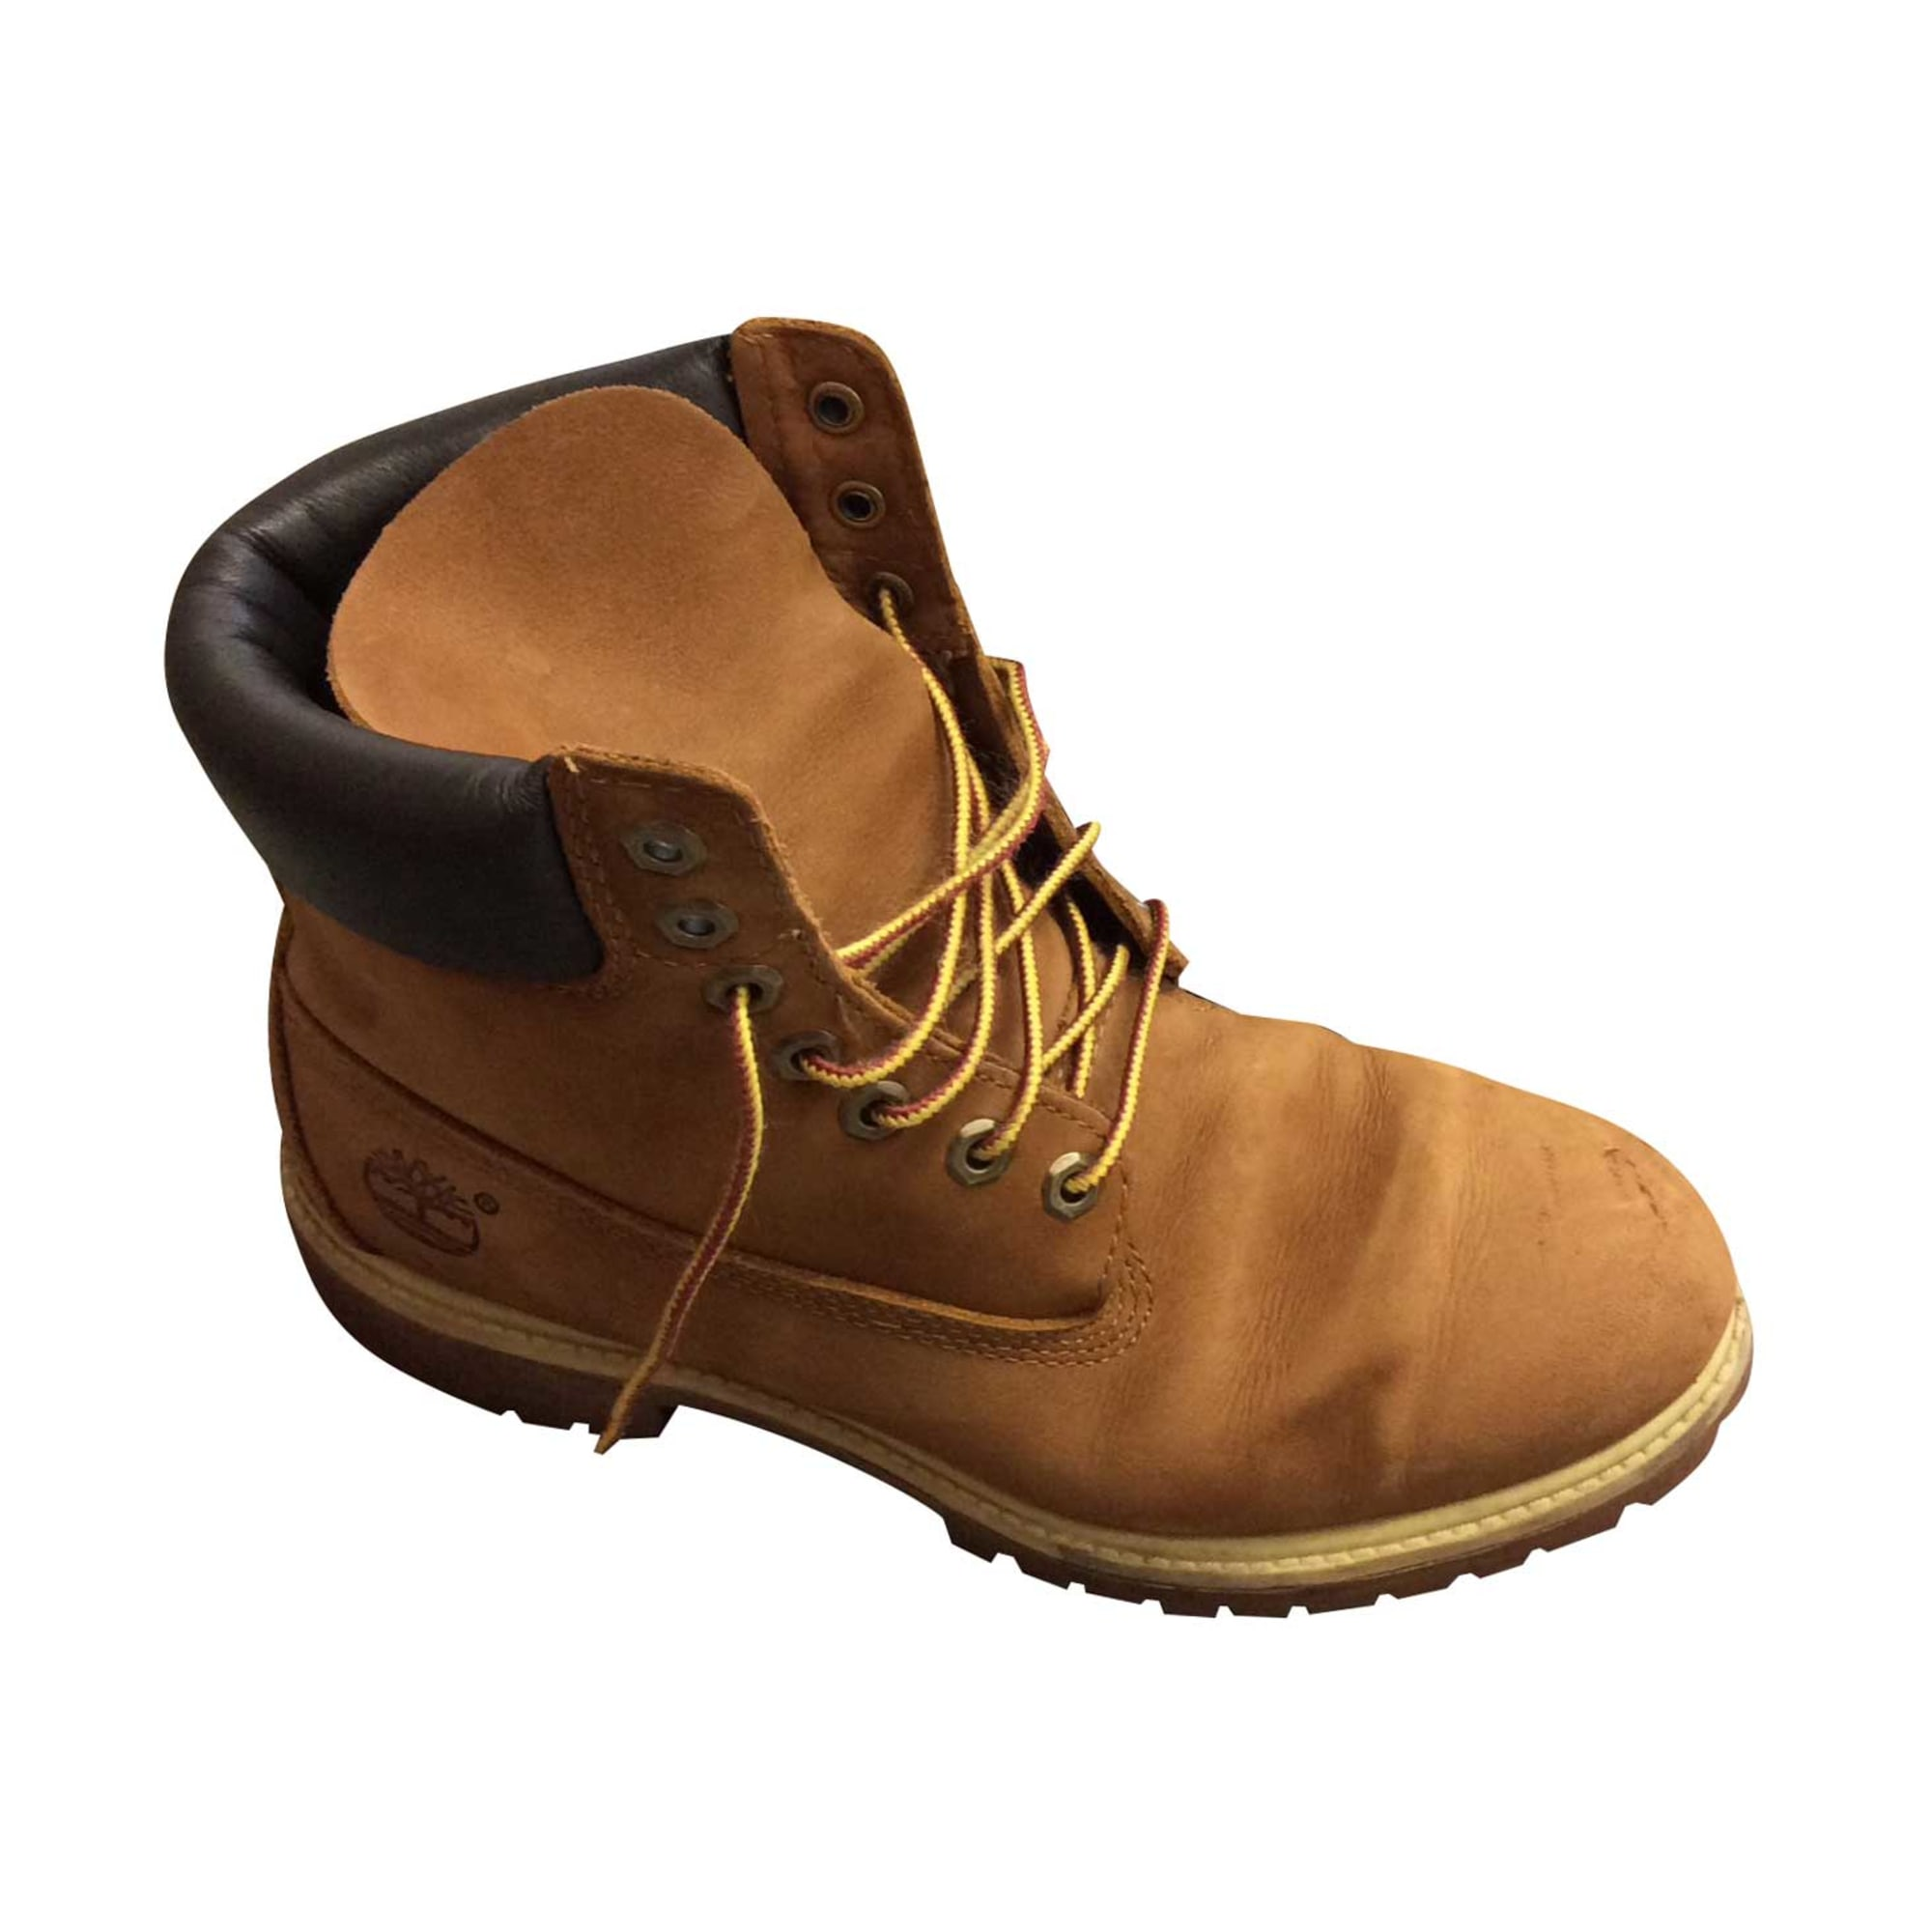 Chaussures à lacets TIMBERLAND Beige, camel